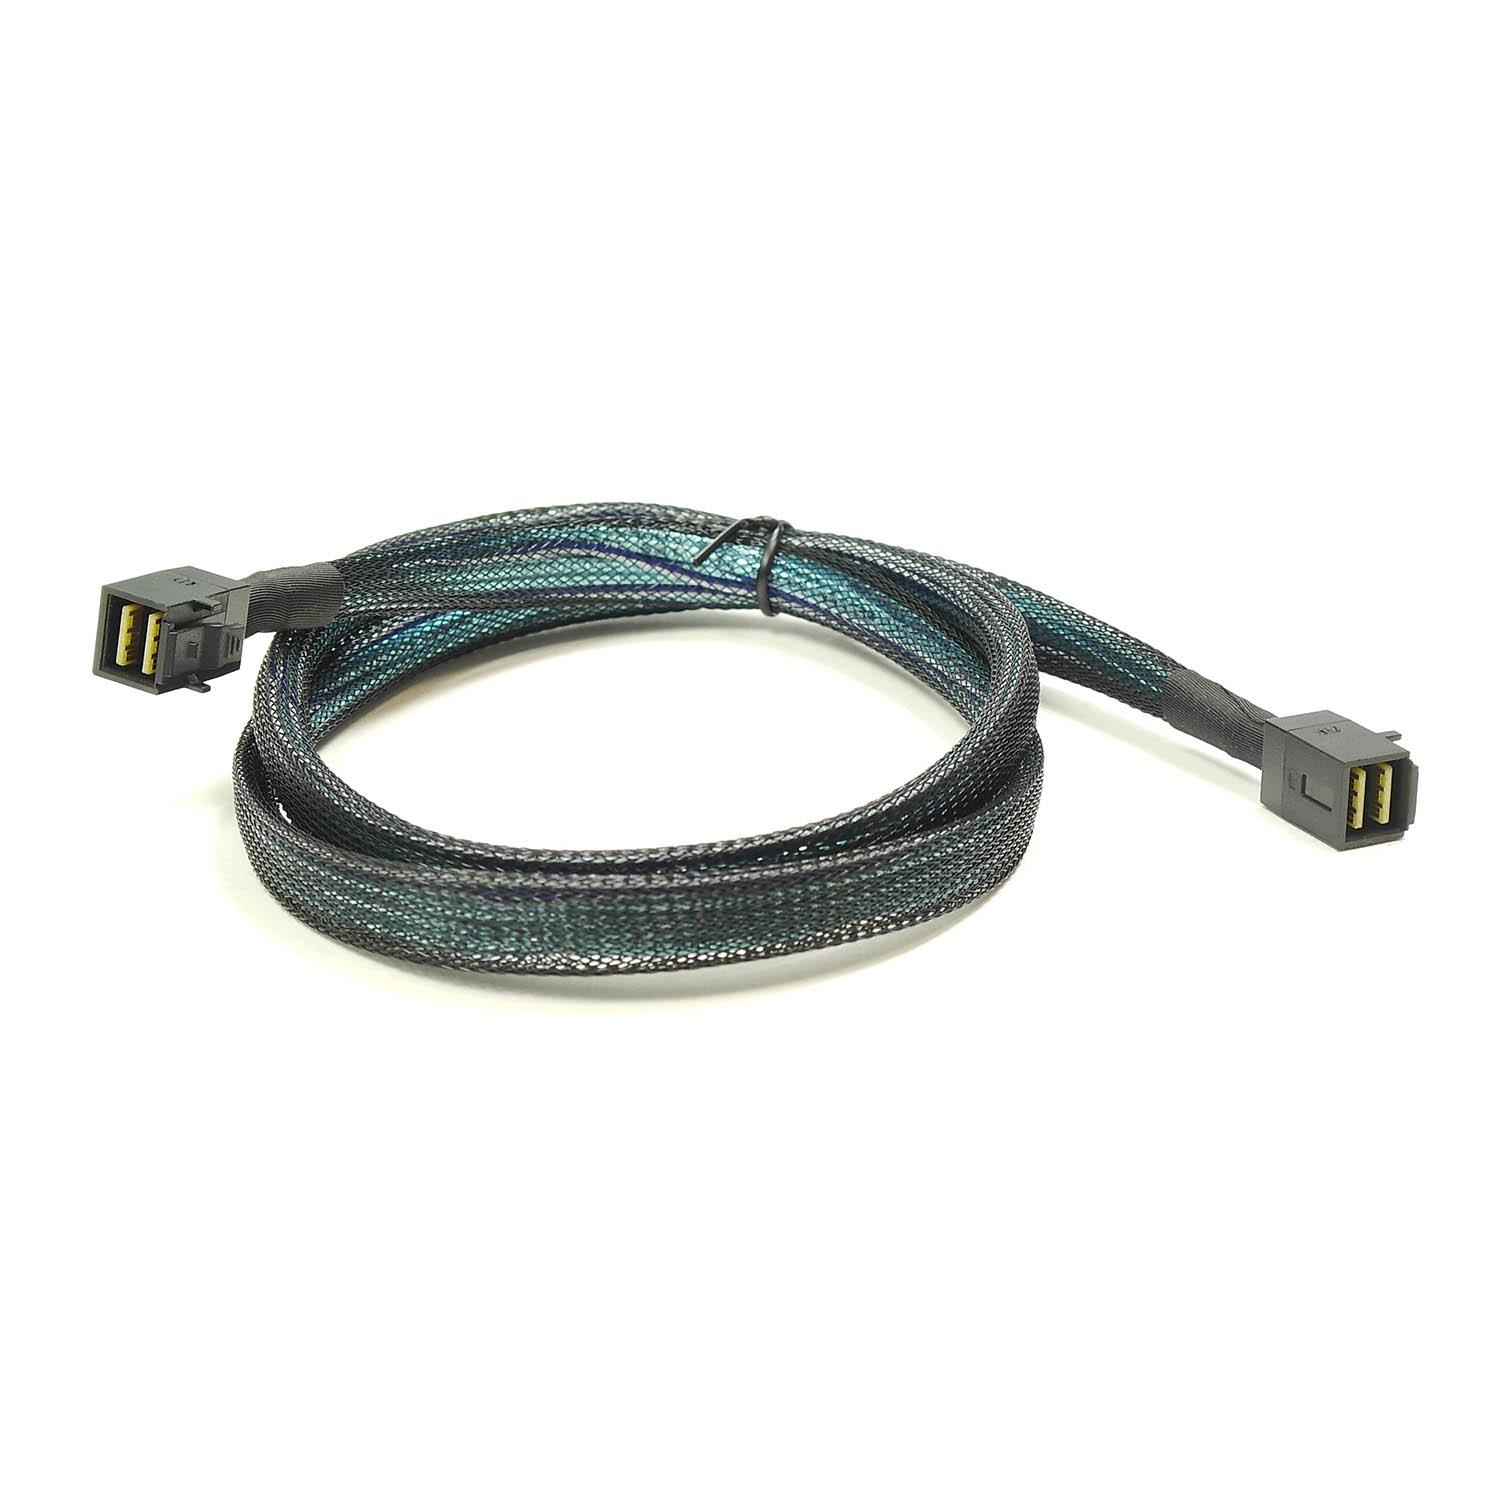 Кабель Mini SAS HD Cable, SFF-8643 - SFF-8643, длина 1 метр, SAS-048, Negorack